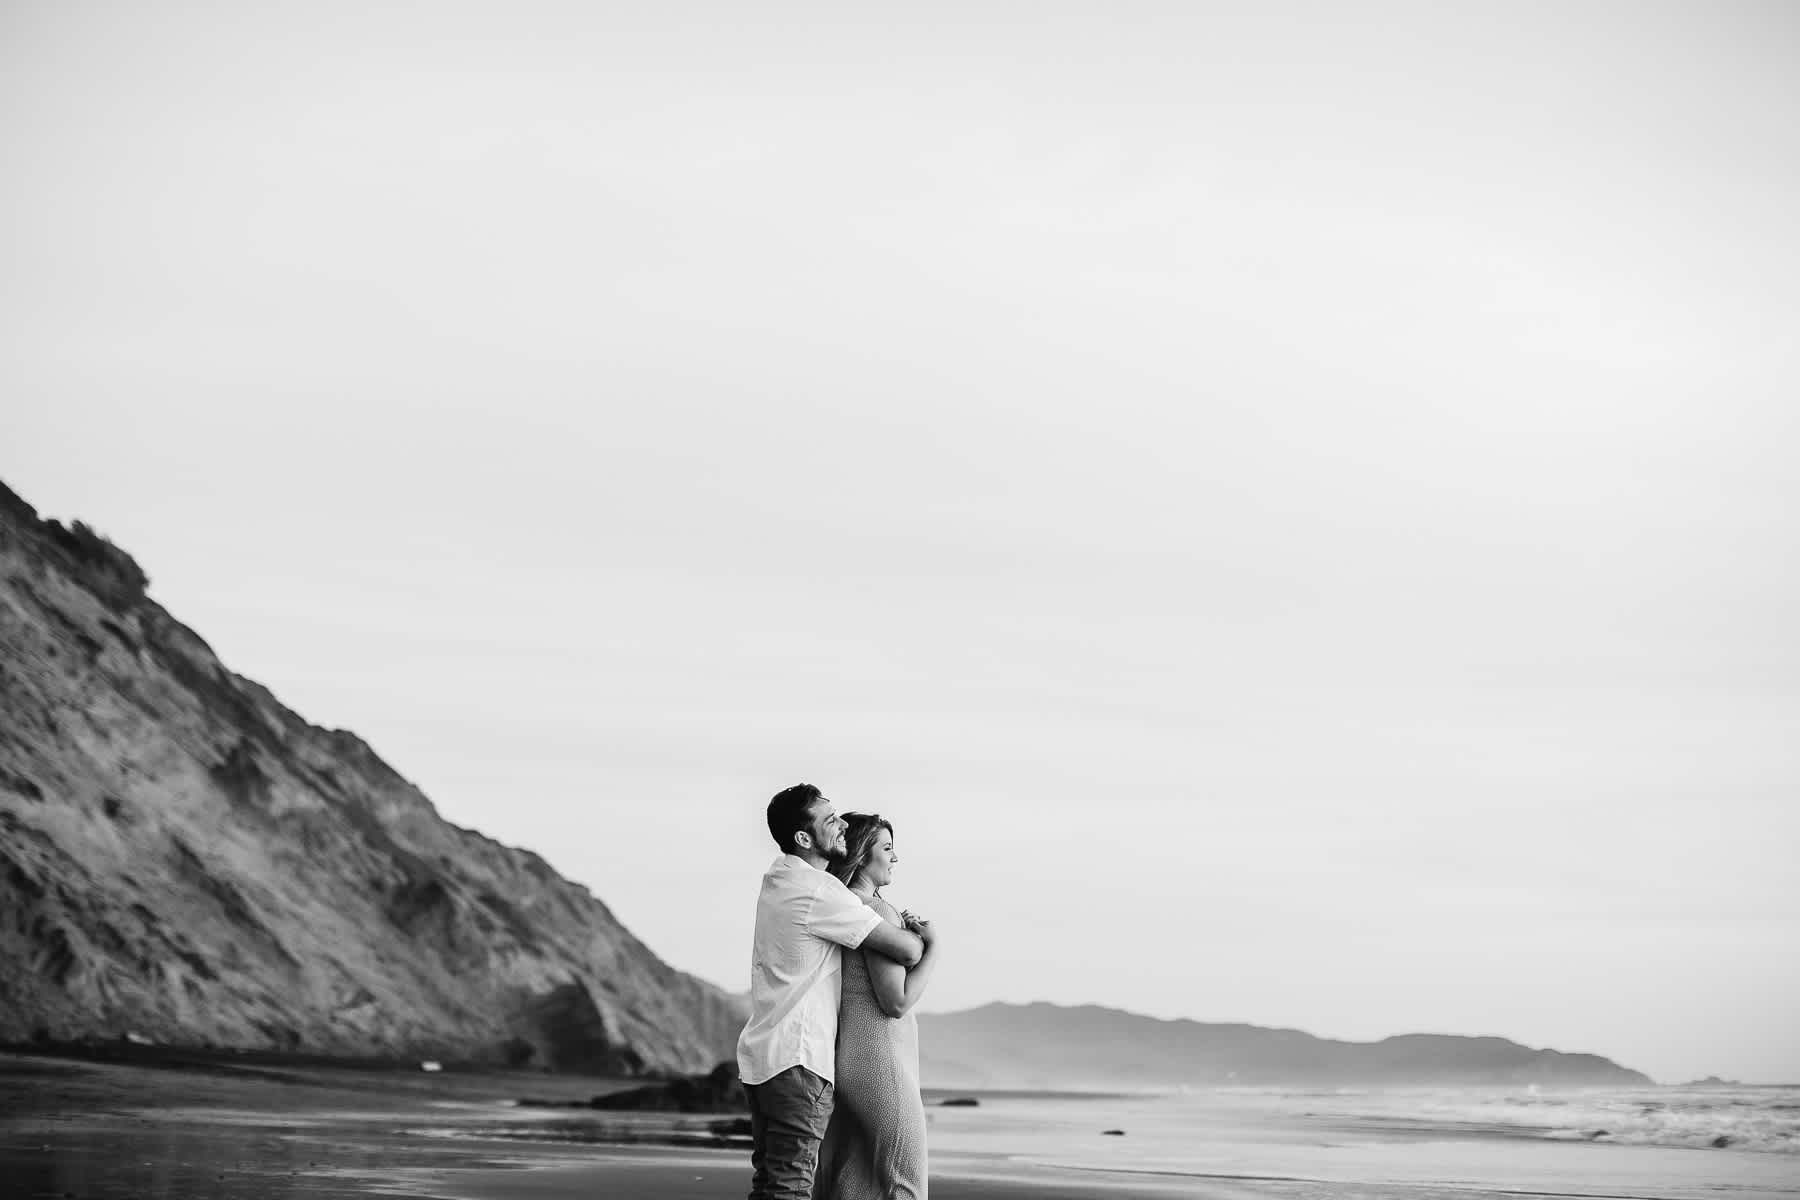 fort-funston-engagement-session-sunset-fun-beach-session-44